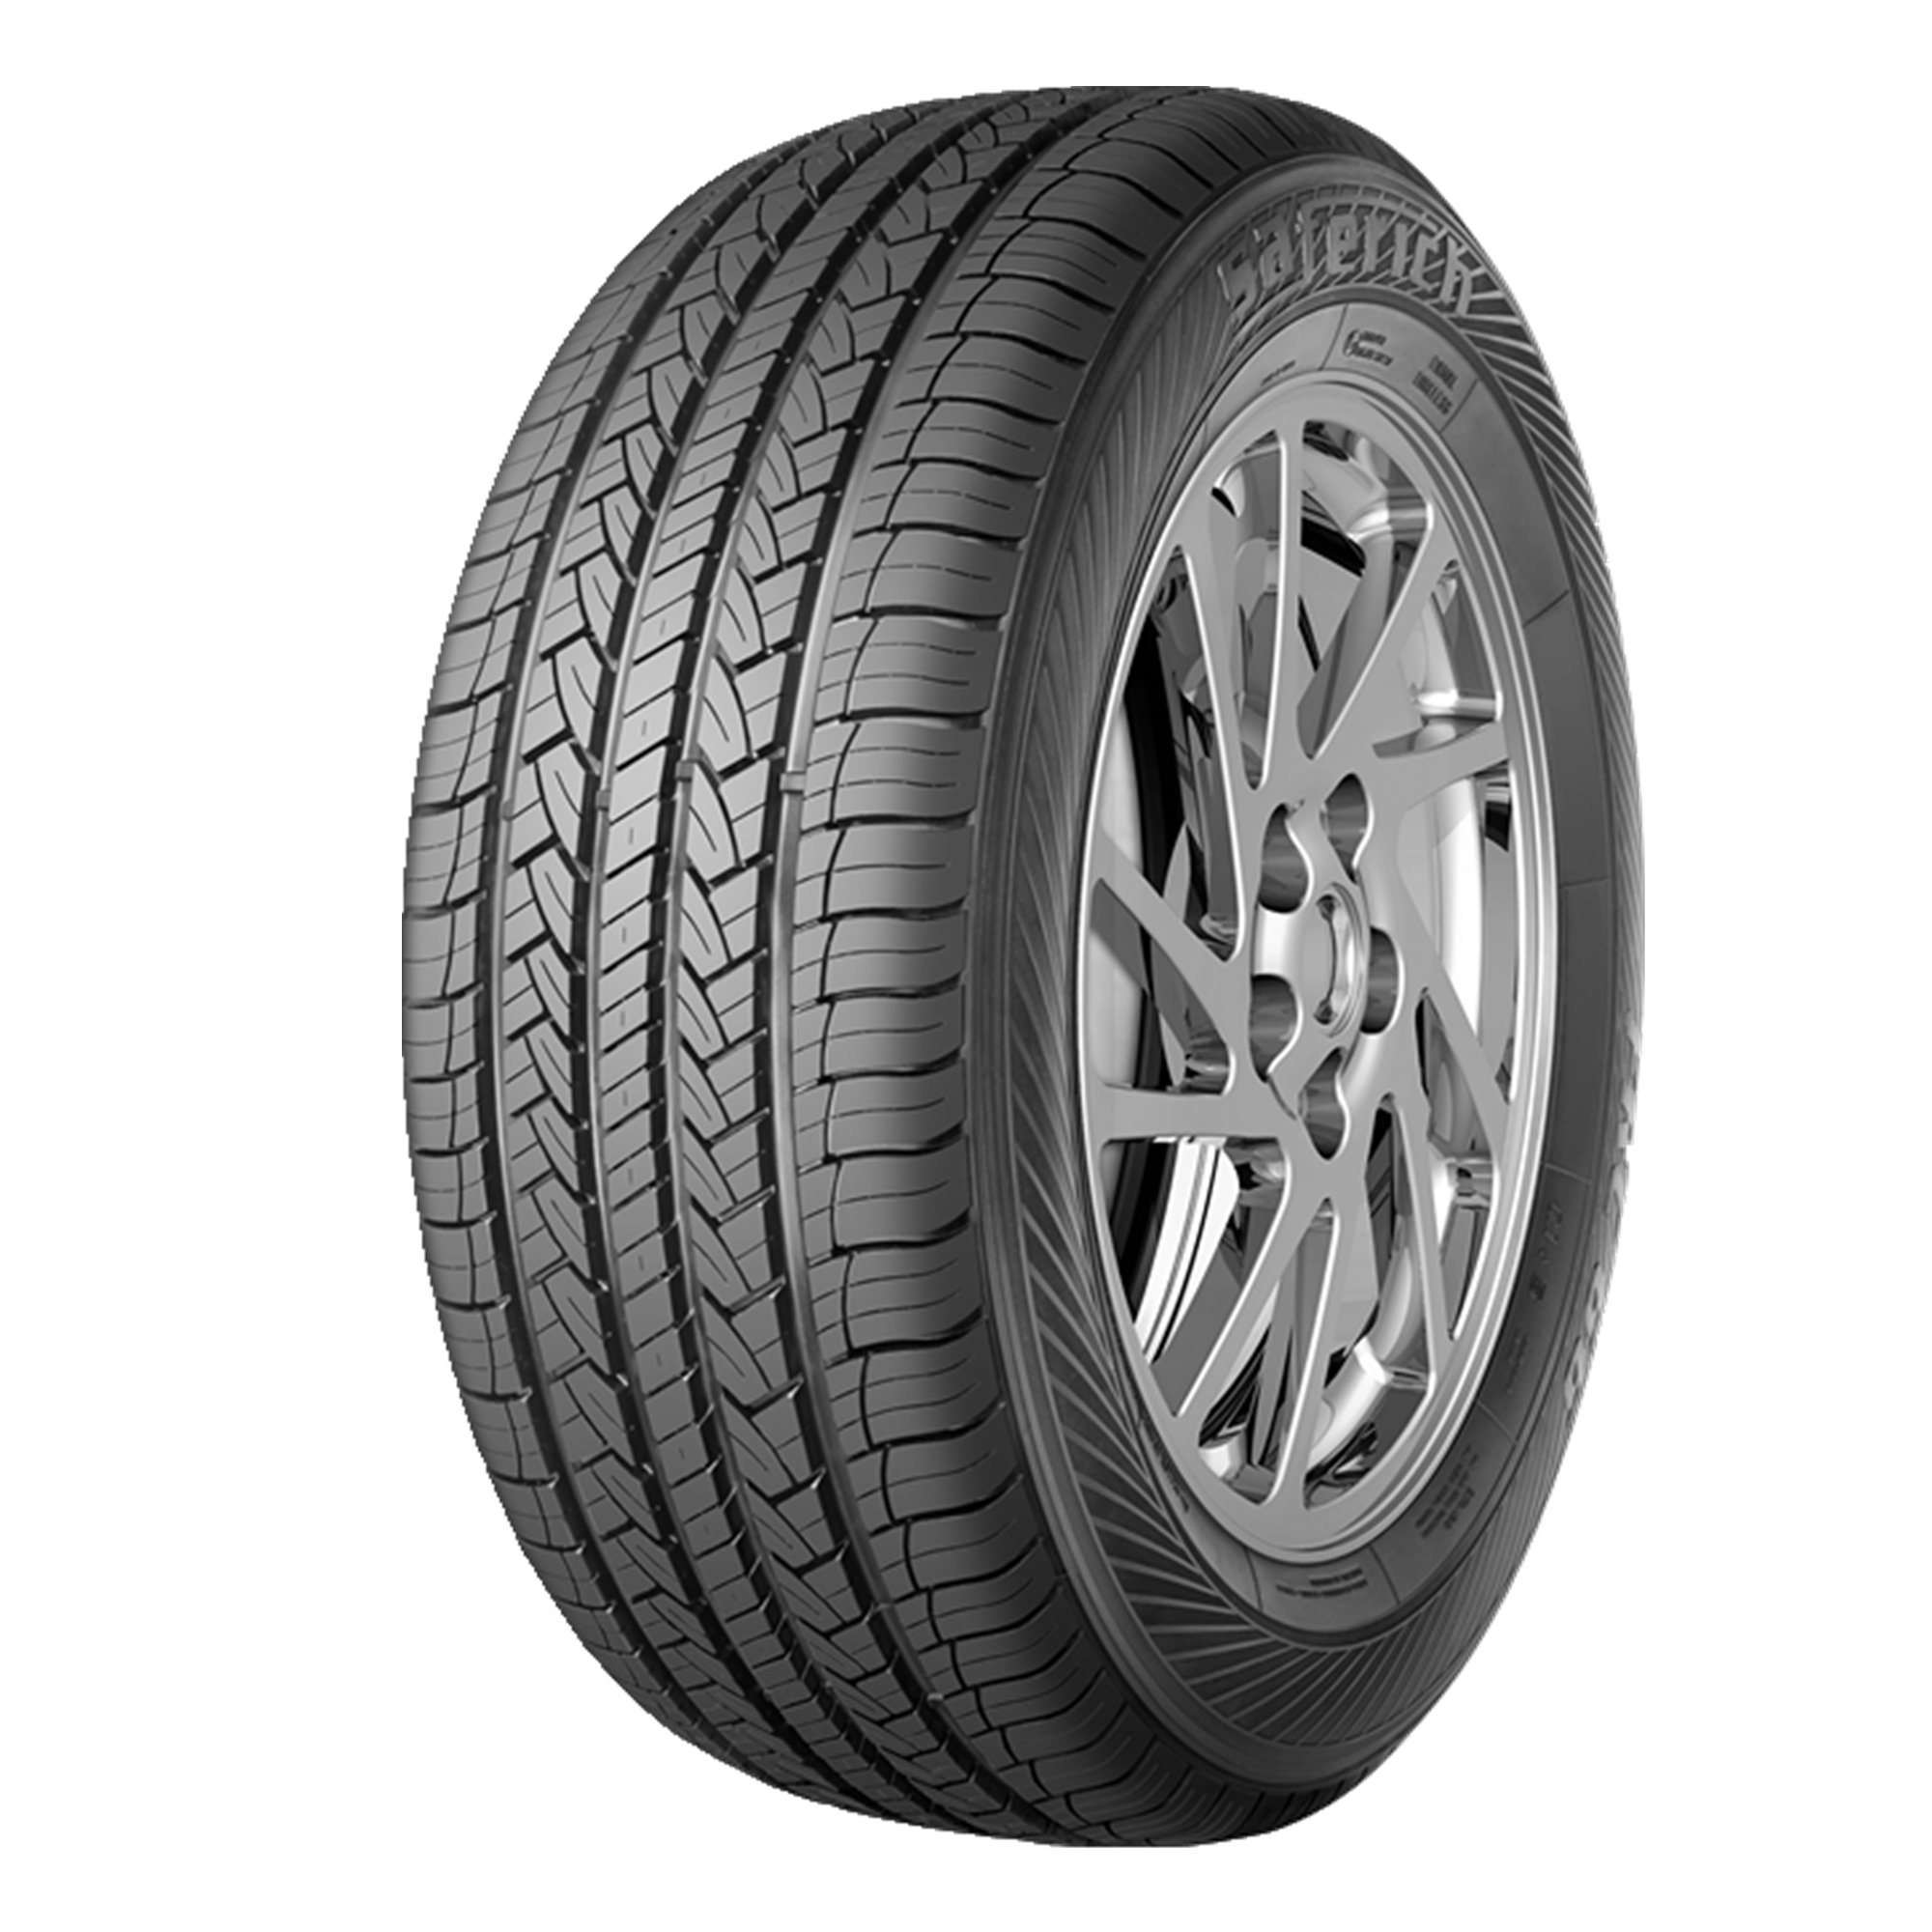 New and Popular Pattern Semi-Steel Radial Car Tyres